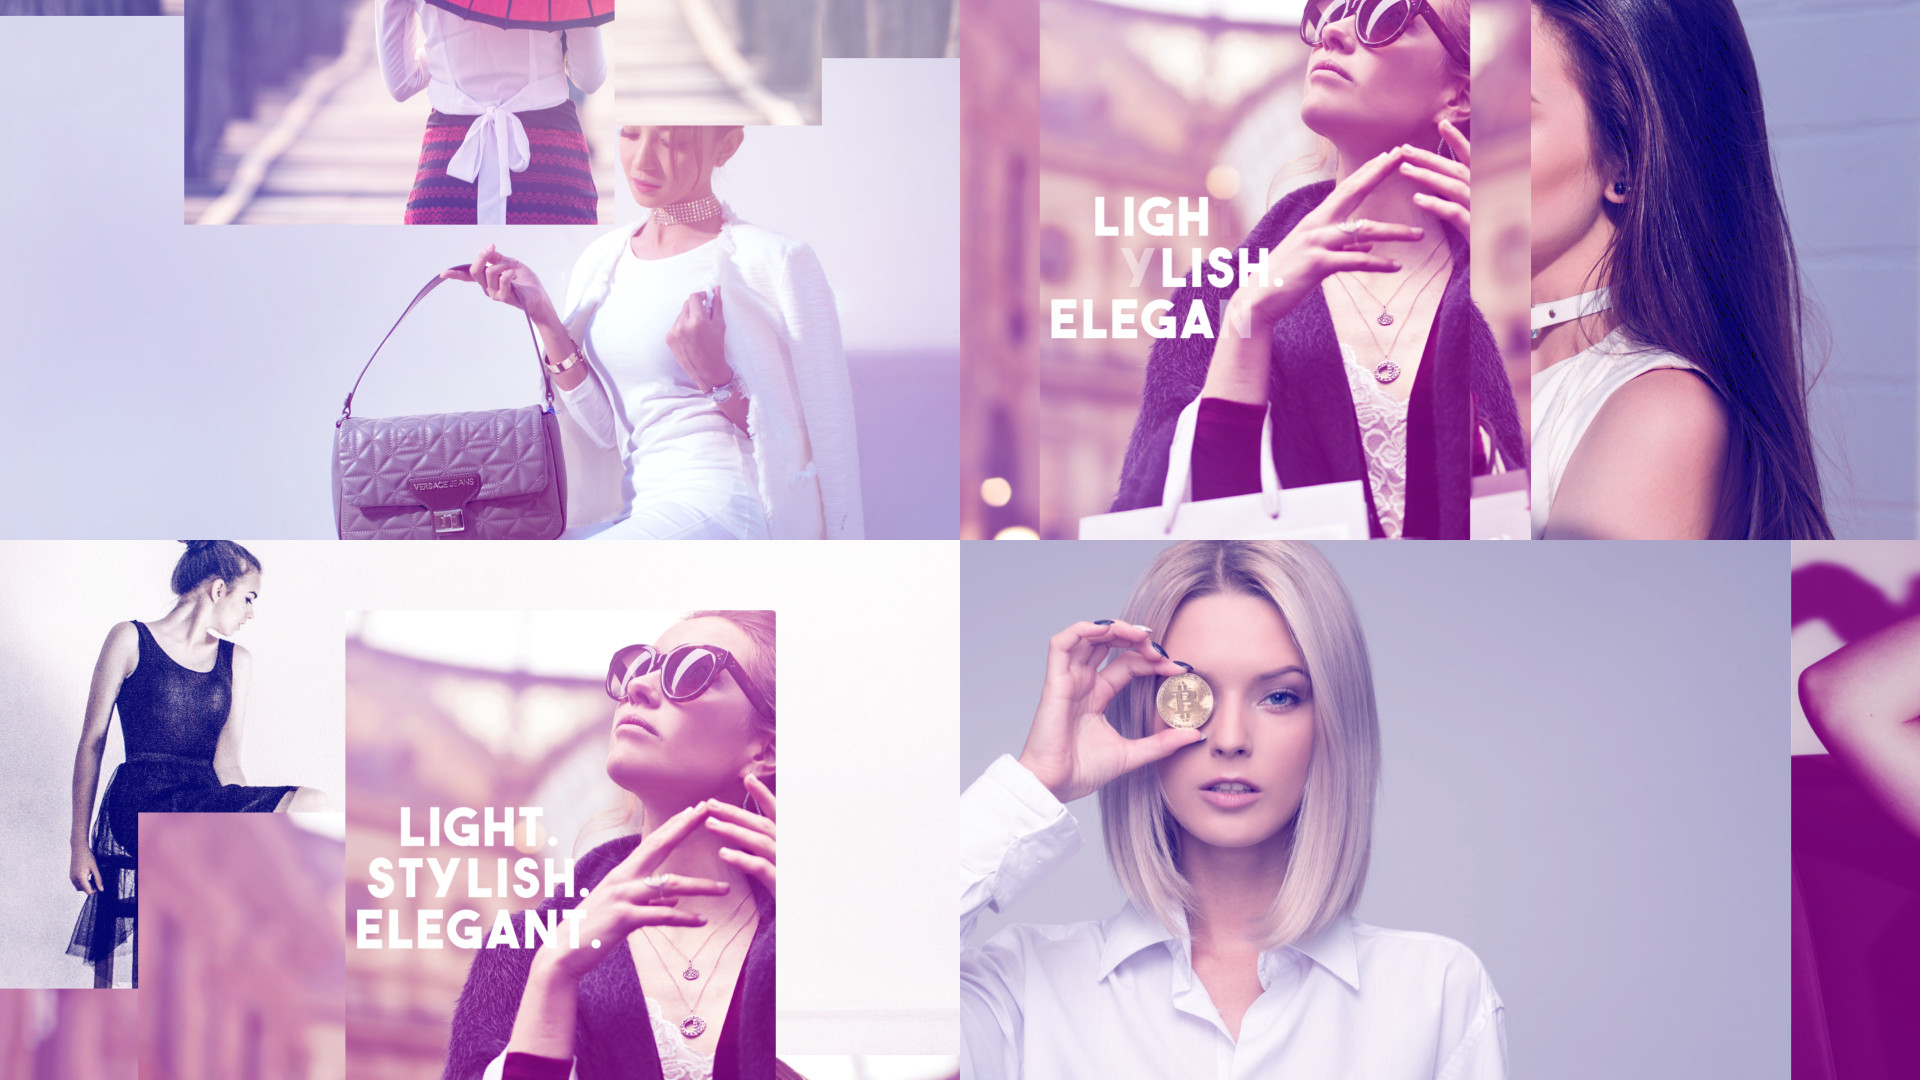 Fashion Slideshow - After Effects 102168